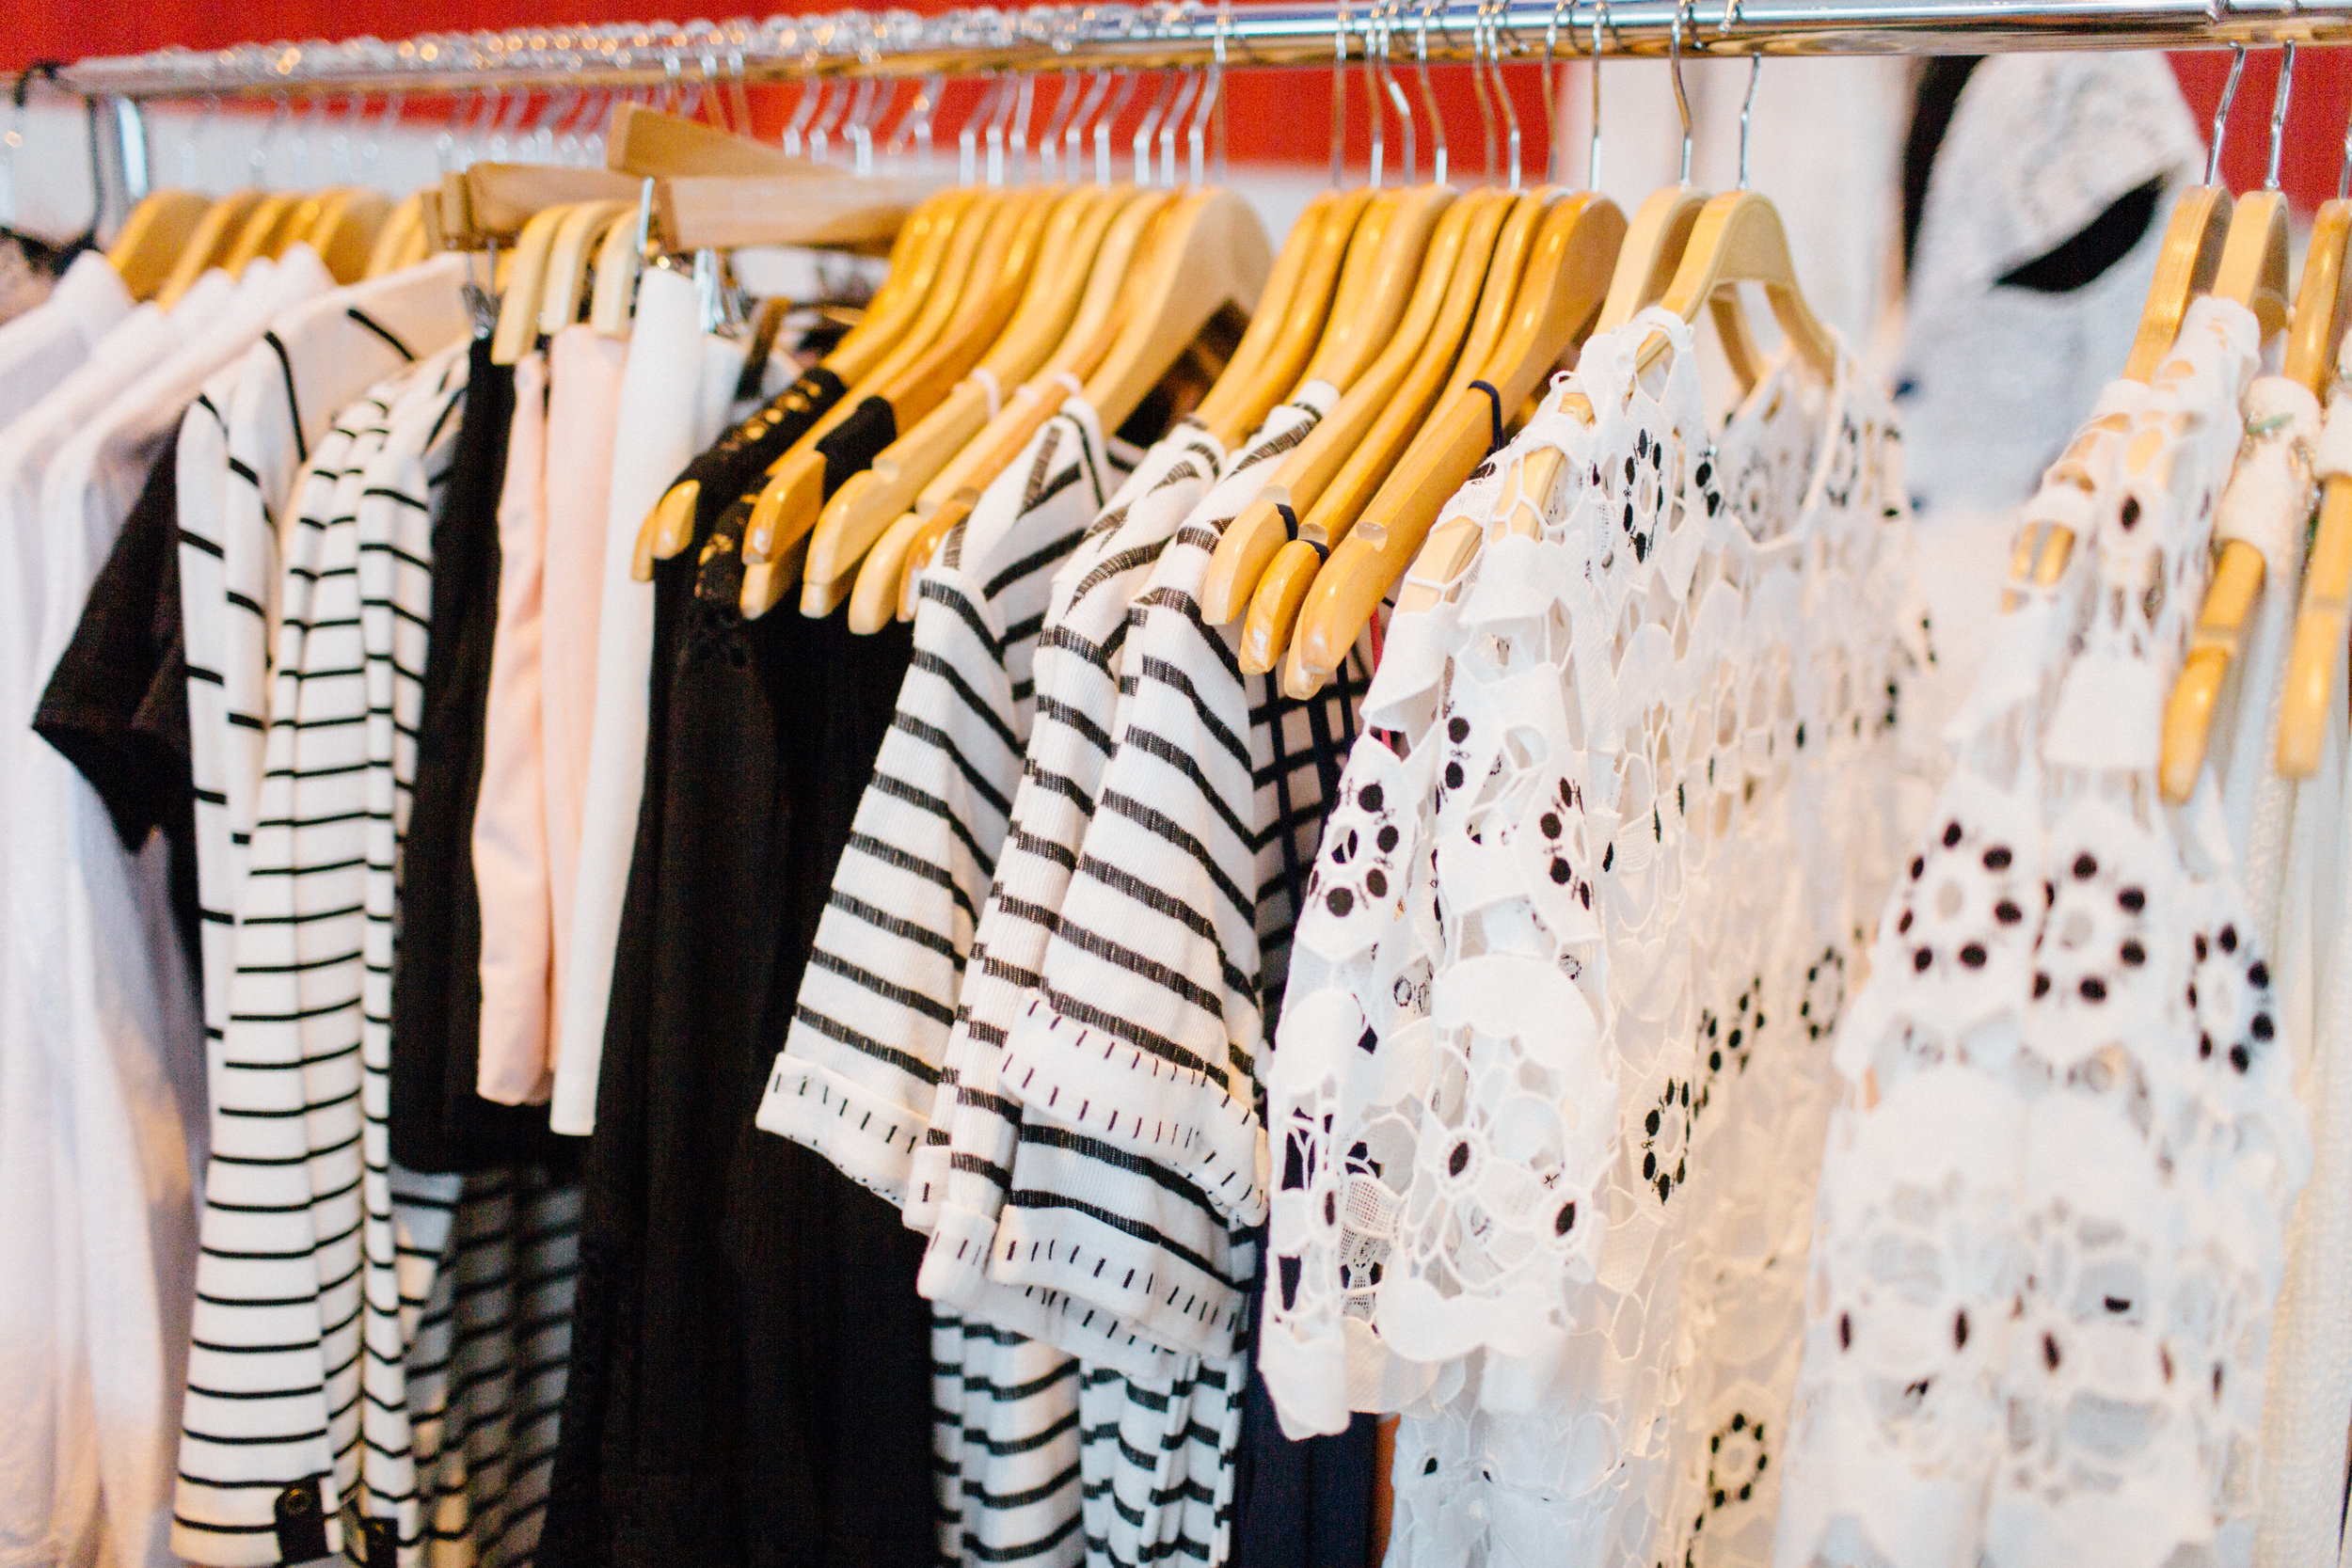 The Wandering Wardrobe - is Cleveland's first mobile boutique featuring fashion forward & affordable styles for women.